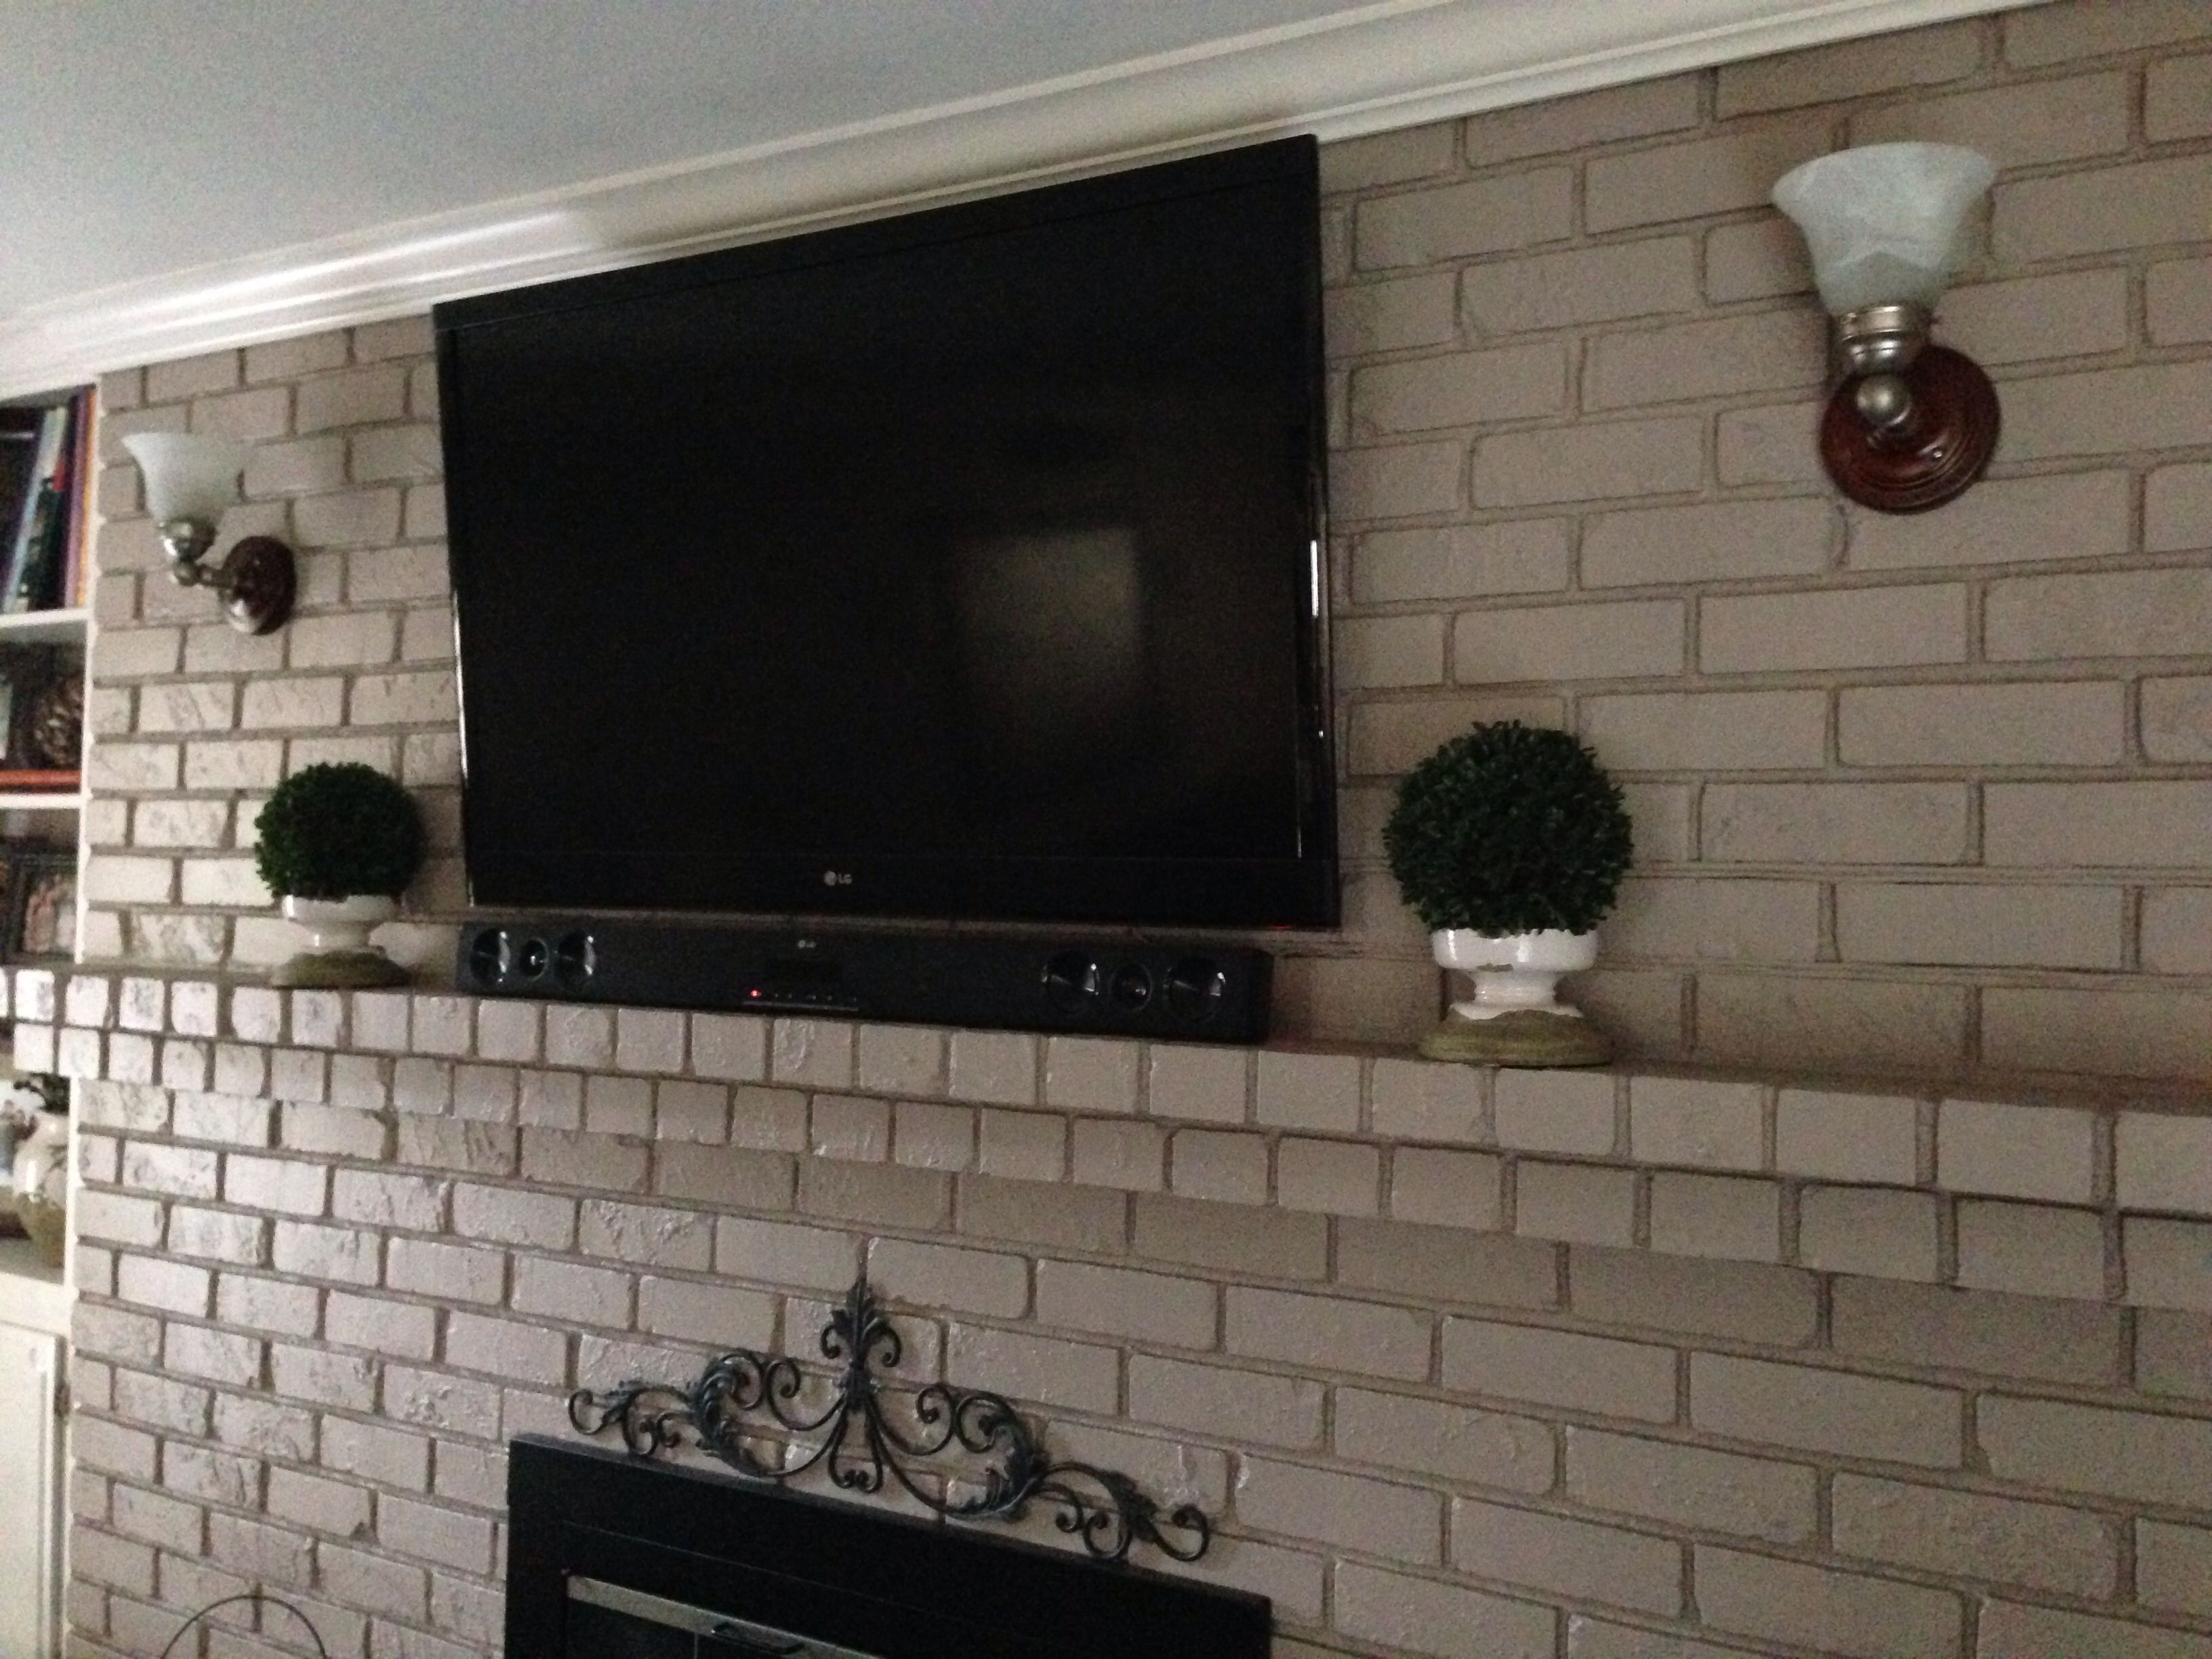 Yes You Can Mount Your Tv To Brick Fireplace Without The Wires Flat Screen Above Wiring Showing Are Siliconed Into Mortar Joints Painted Over